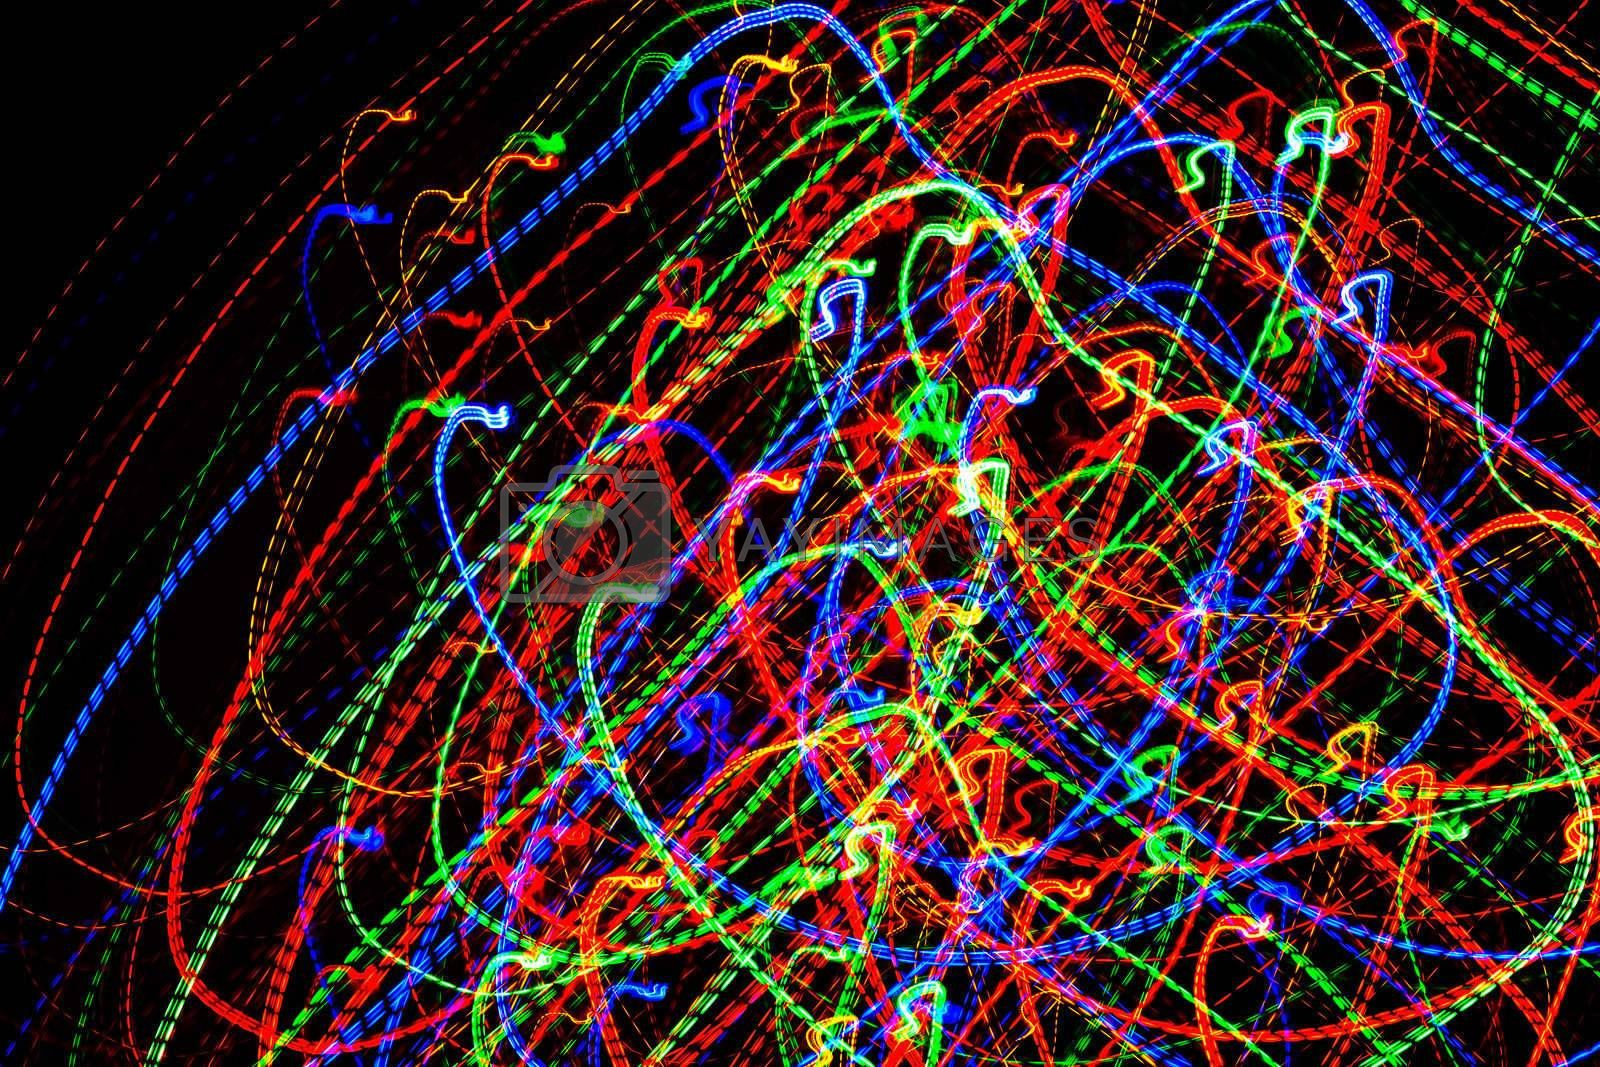 abstract glowing background resembling motion blurred neon light curves